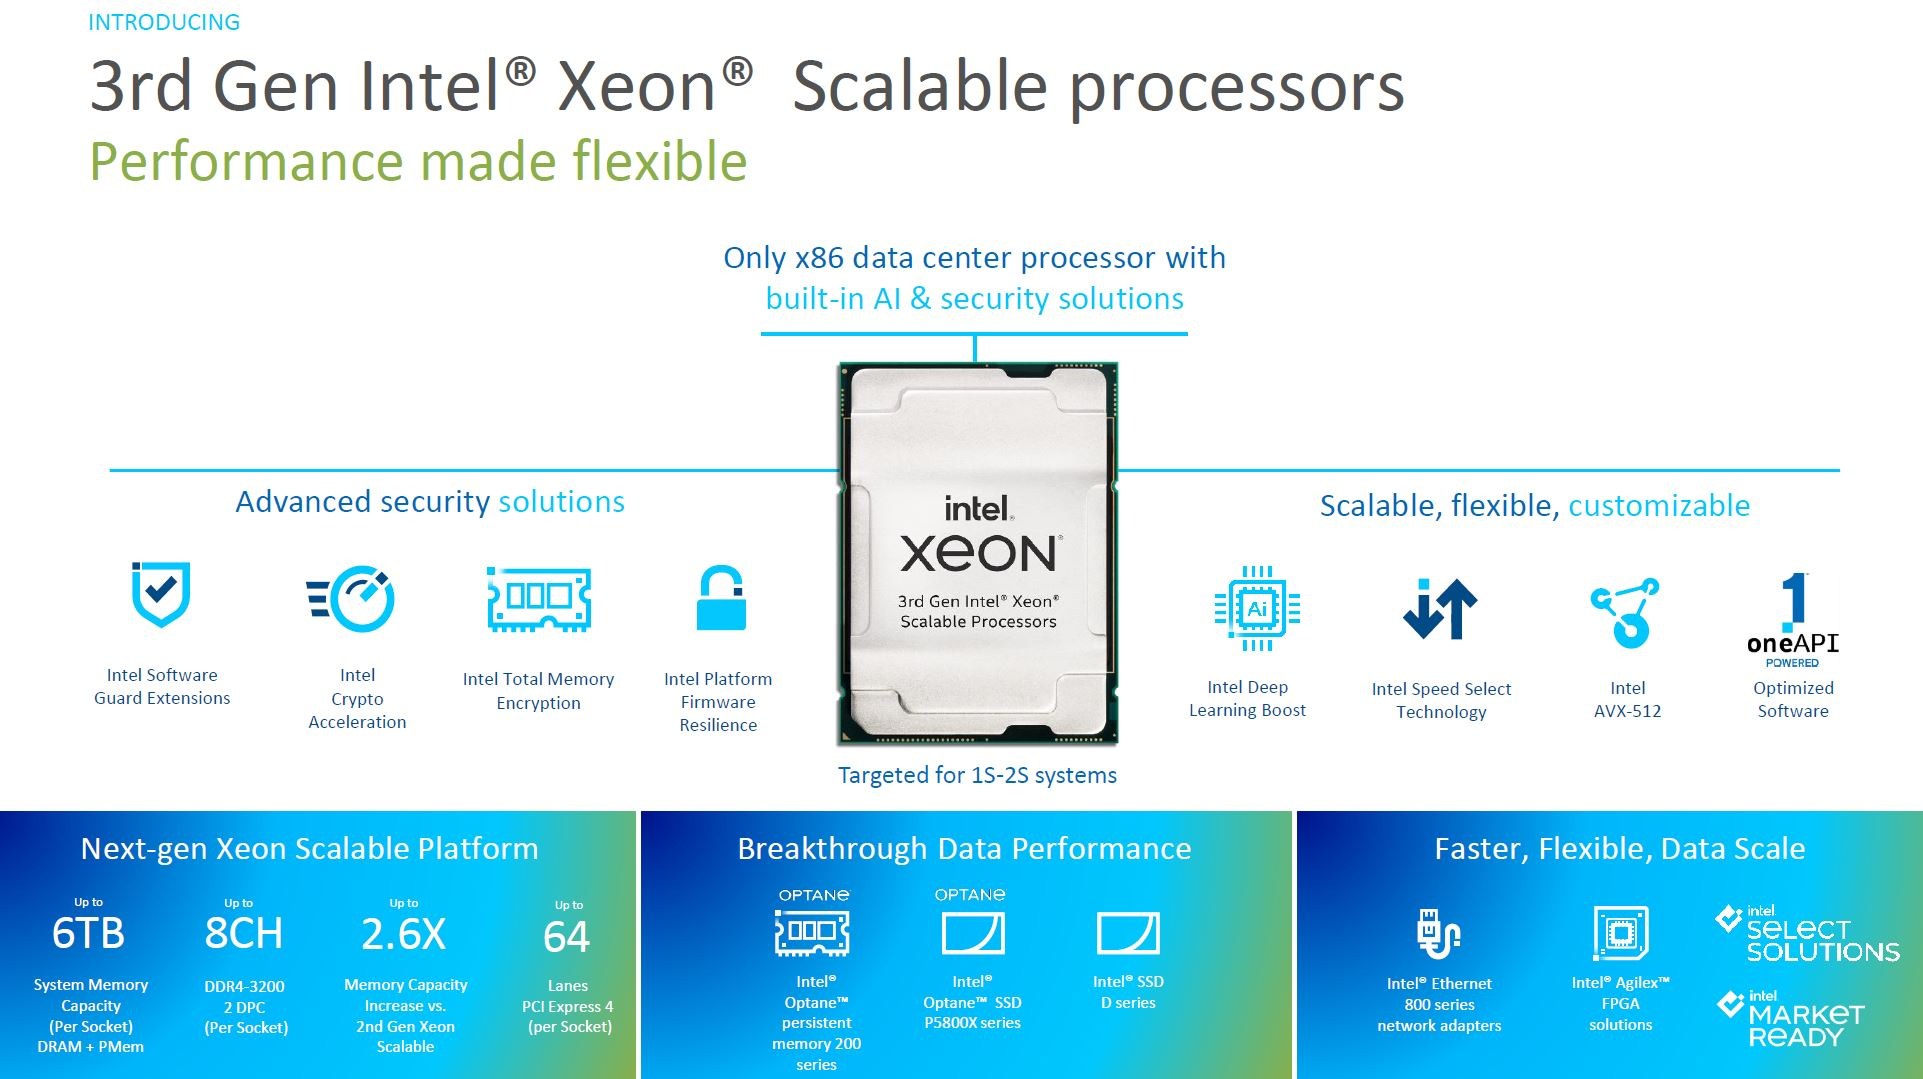 3rd Generation Intel Xeon Scalable Benefit Overview 2